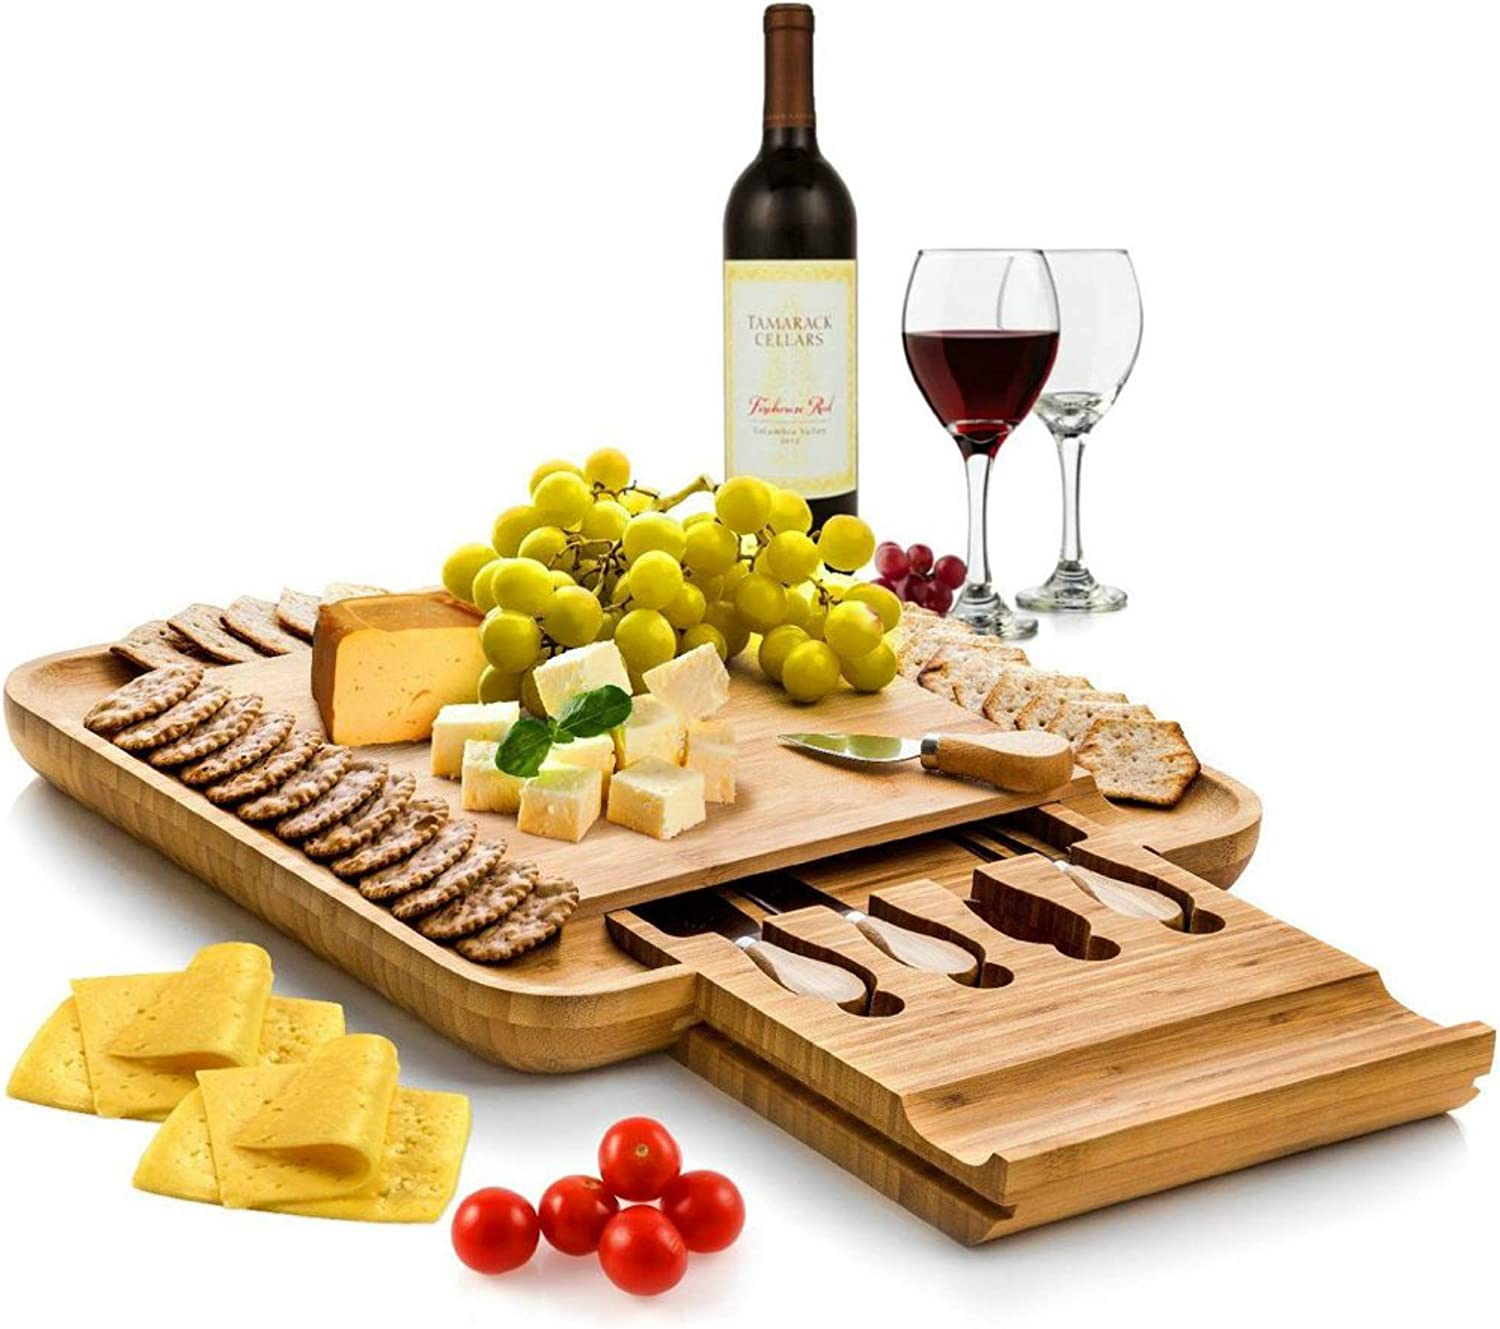 Cheese board and knife set.